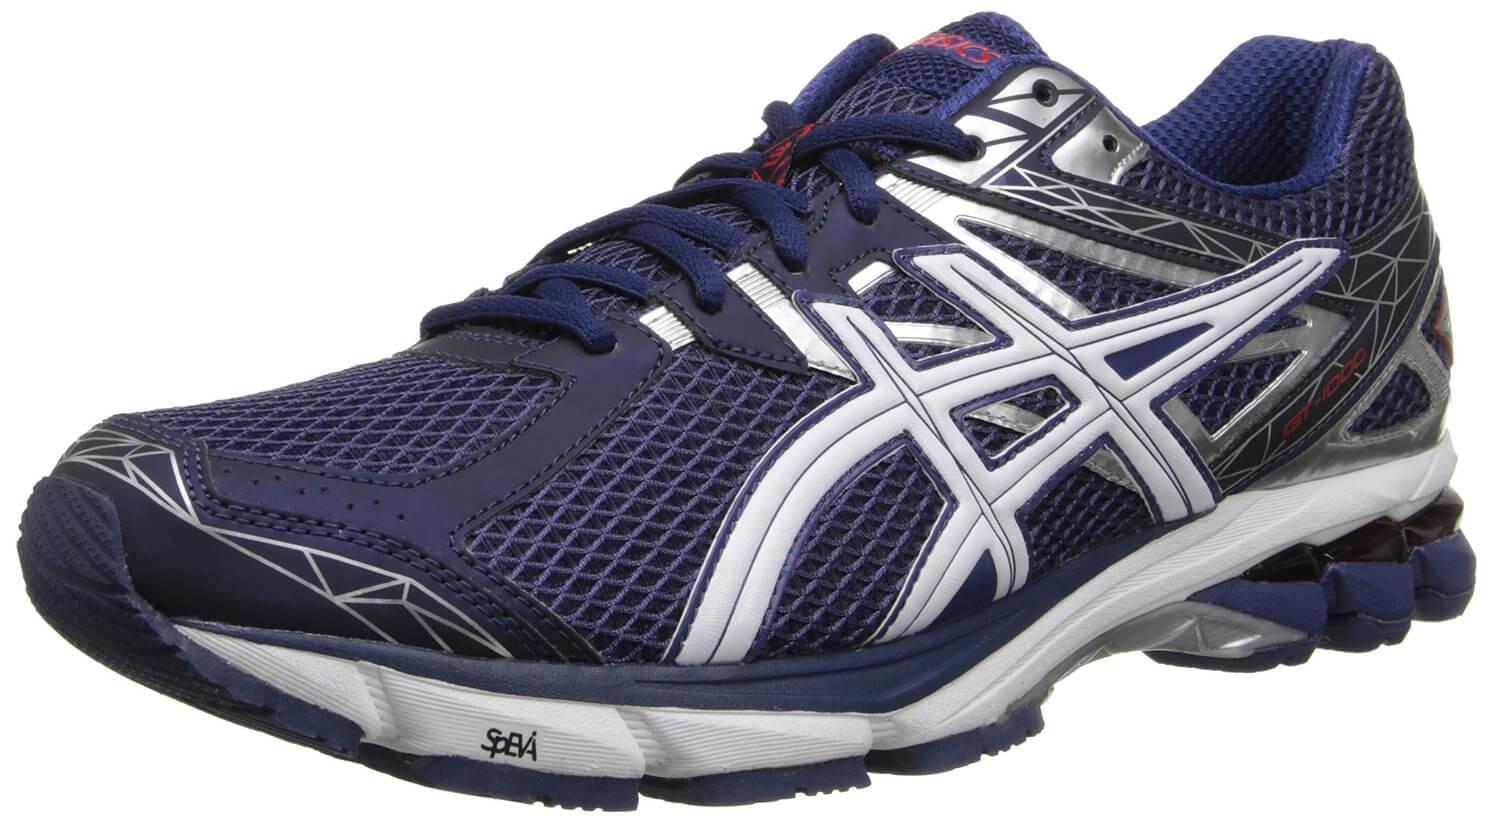 The Asics GT-1000 3 is a high quality shoe excellent for running long distances.